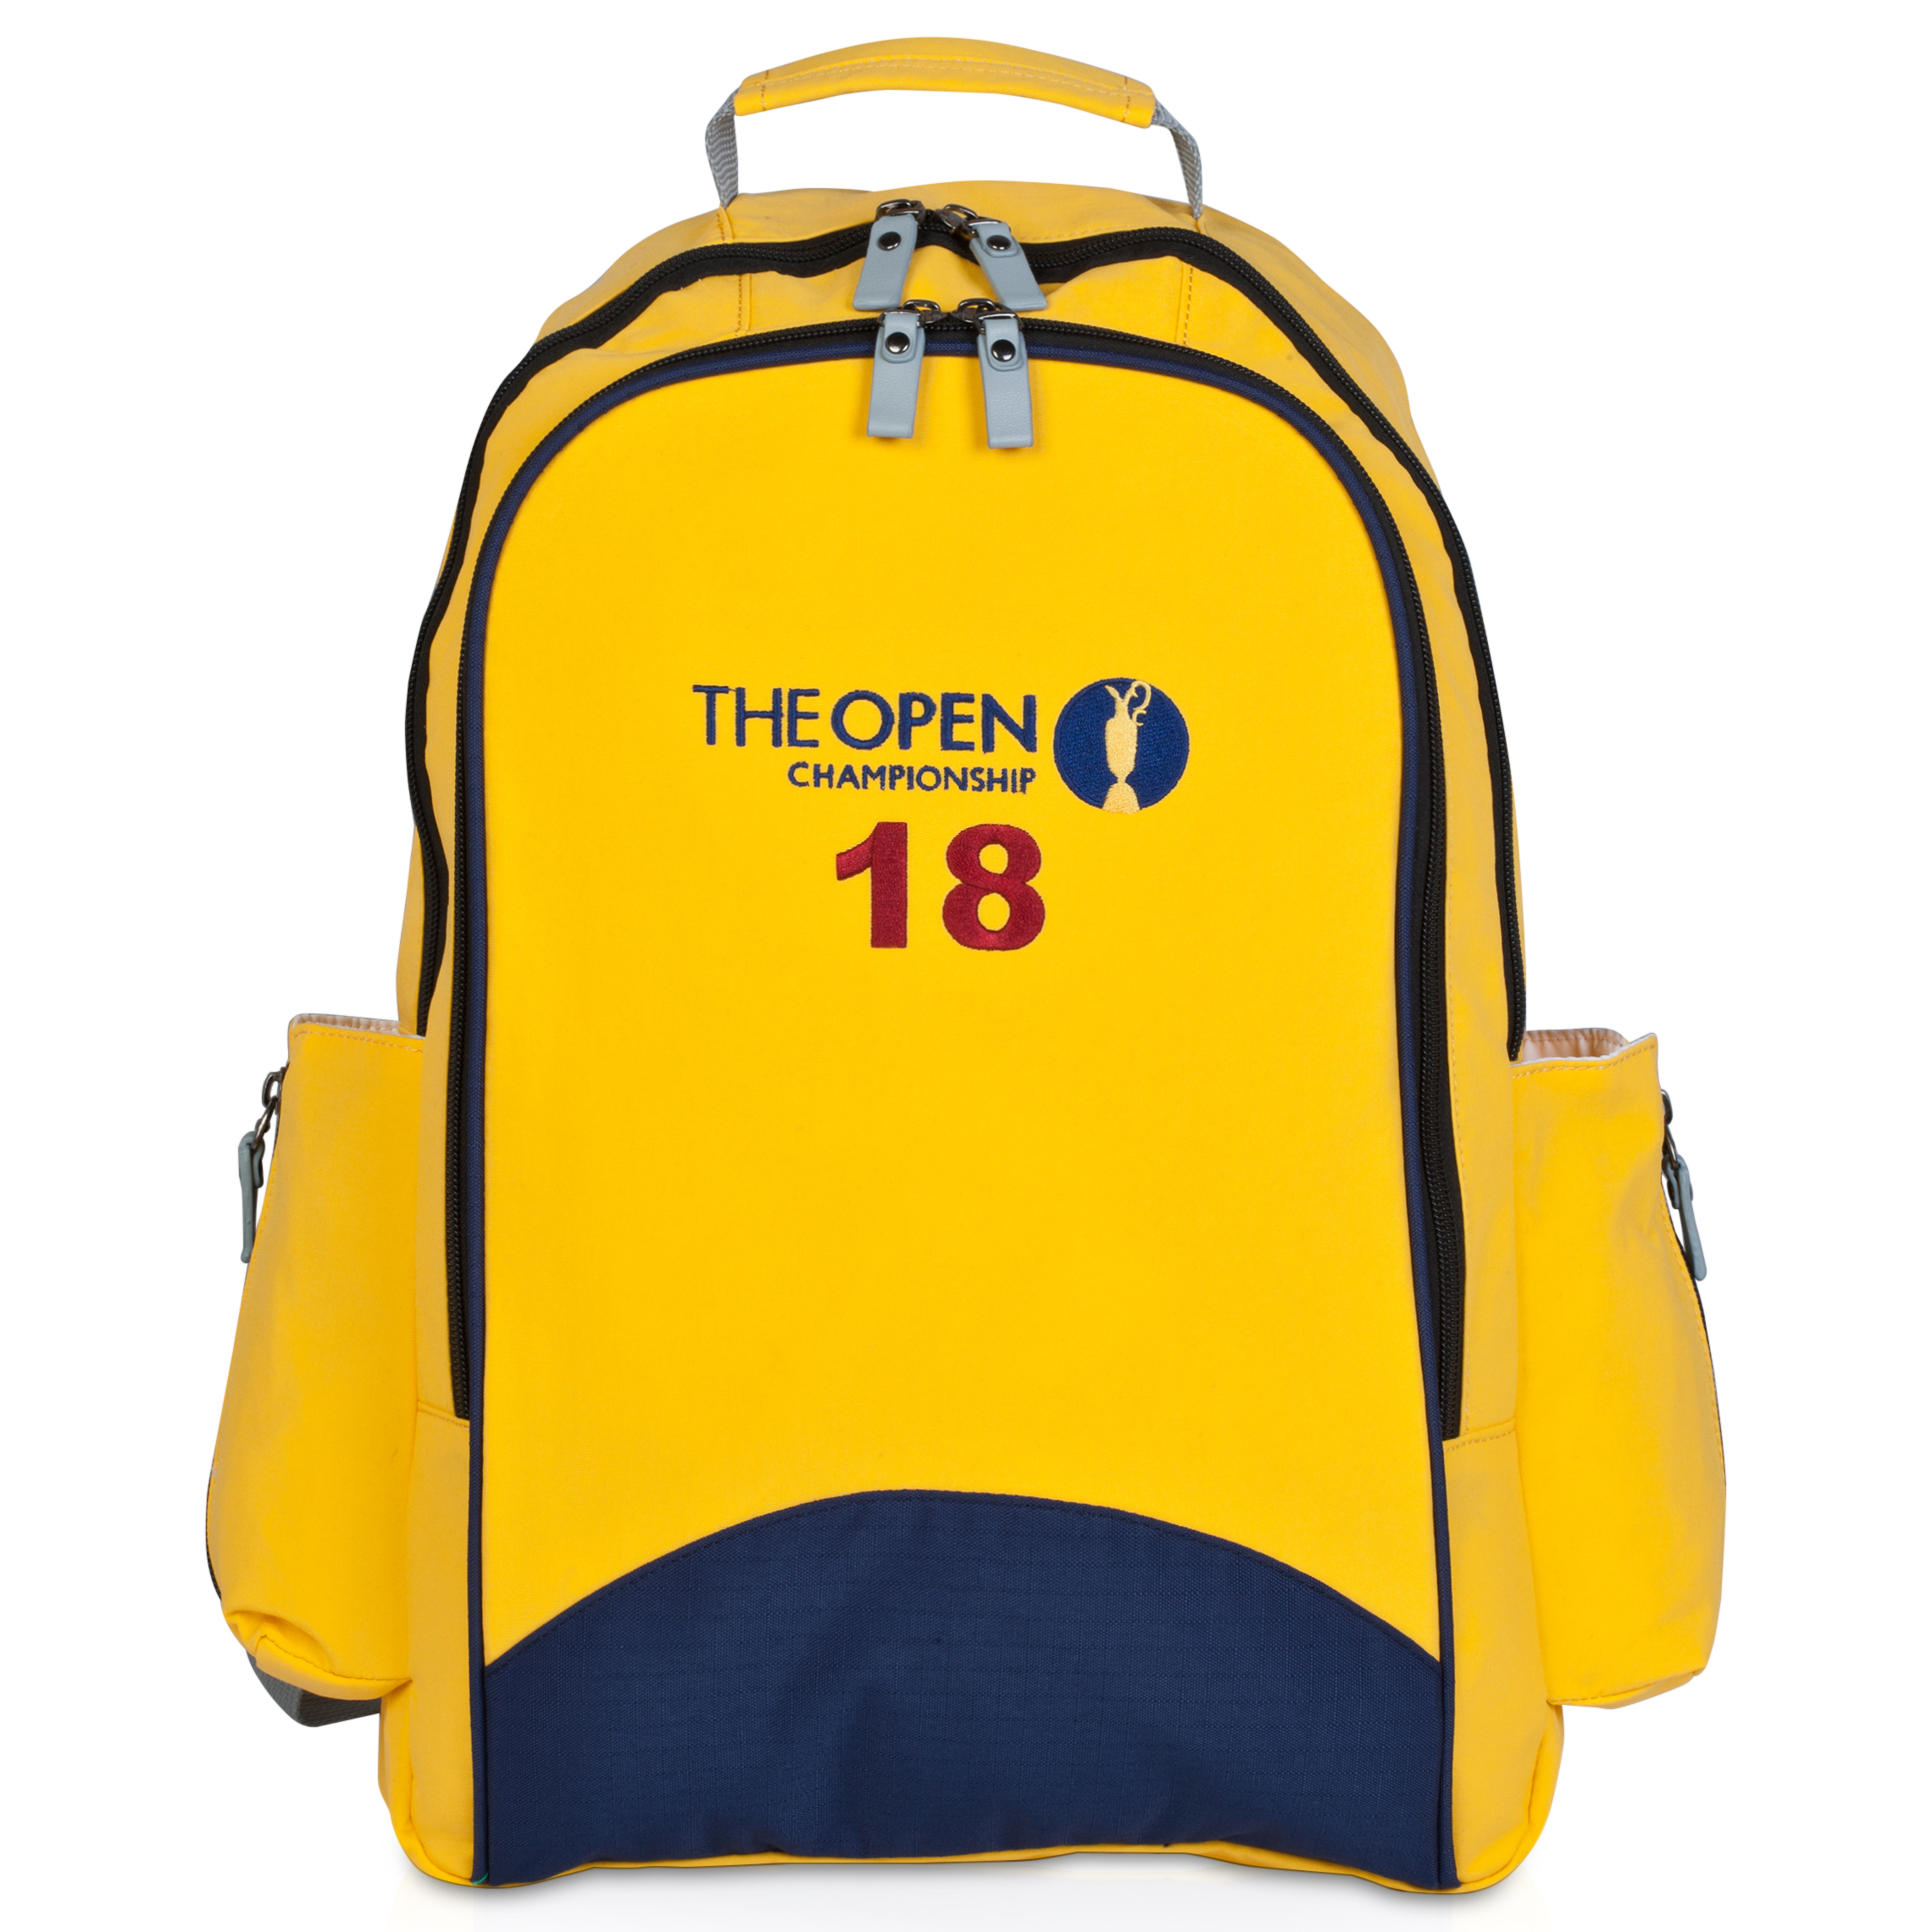 The Open Championship Royal Liverpool 2014 Rucksack